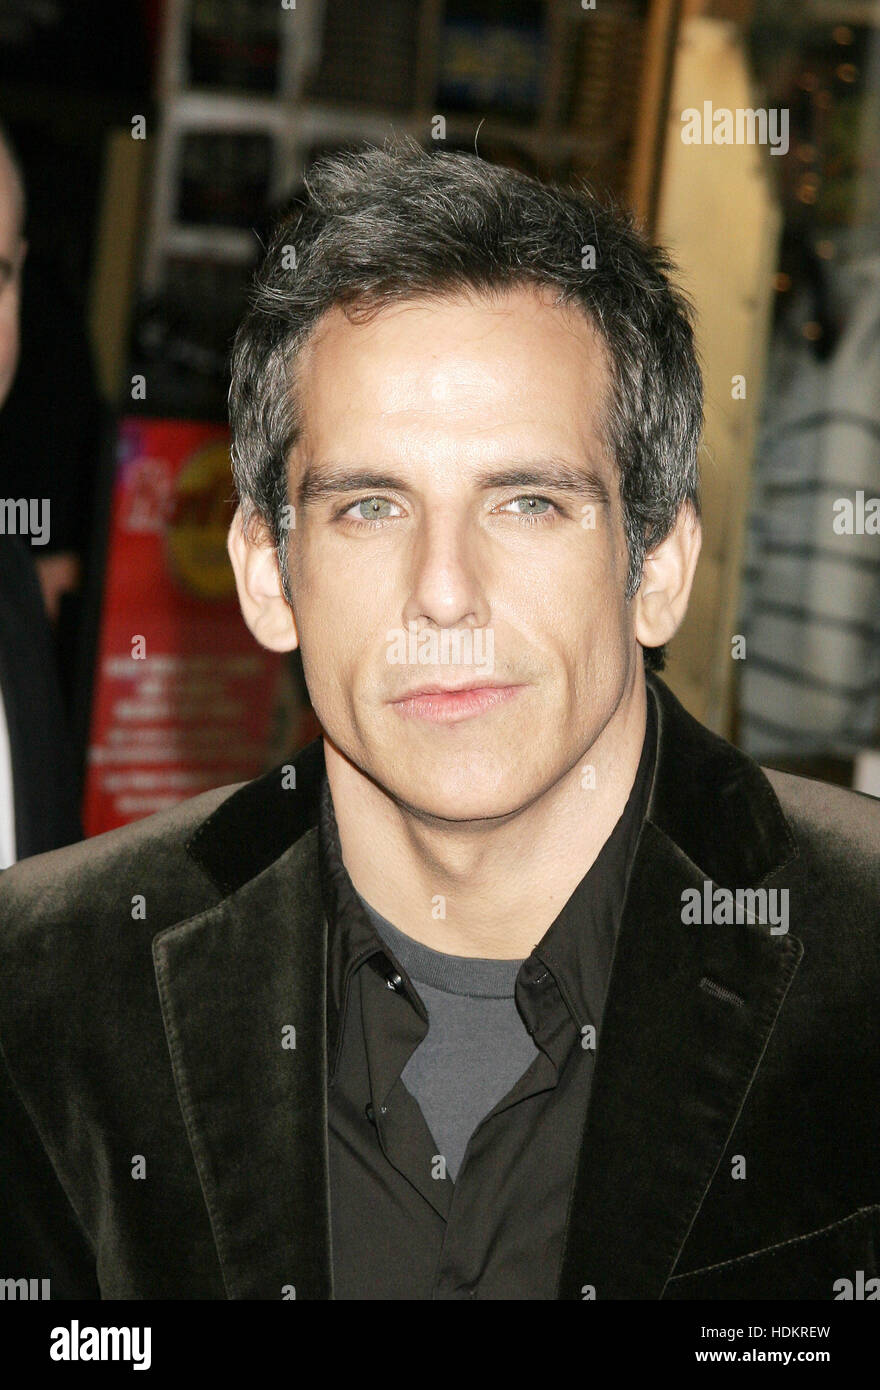 Ben Stiller at the premiere of the film, 'Meet The Fockers'  on December 16, 2004 in Los Angeles. Photo - Stock Image